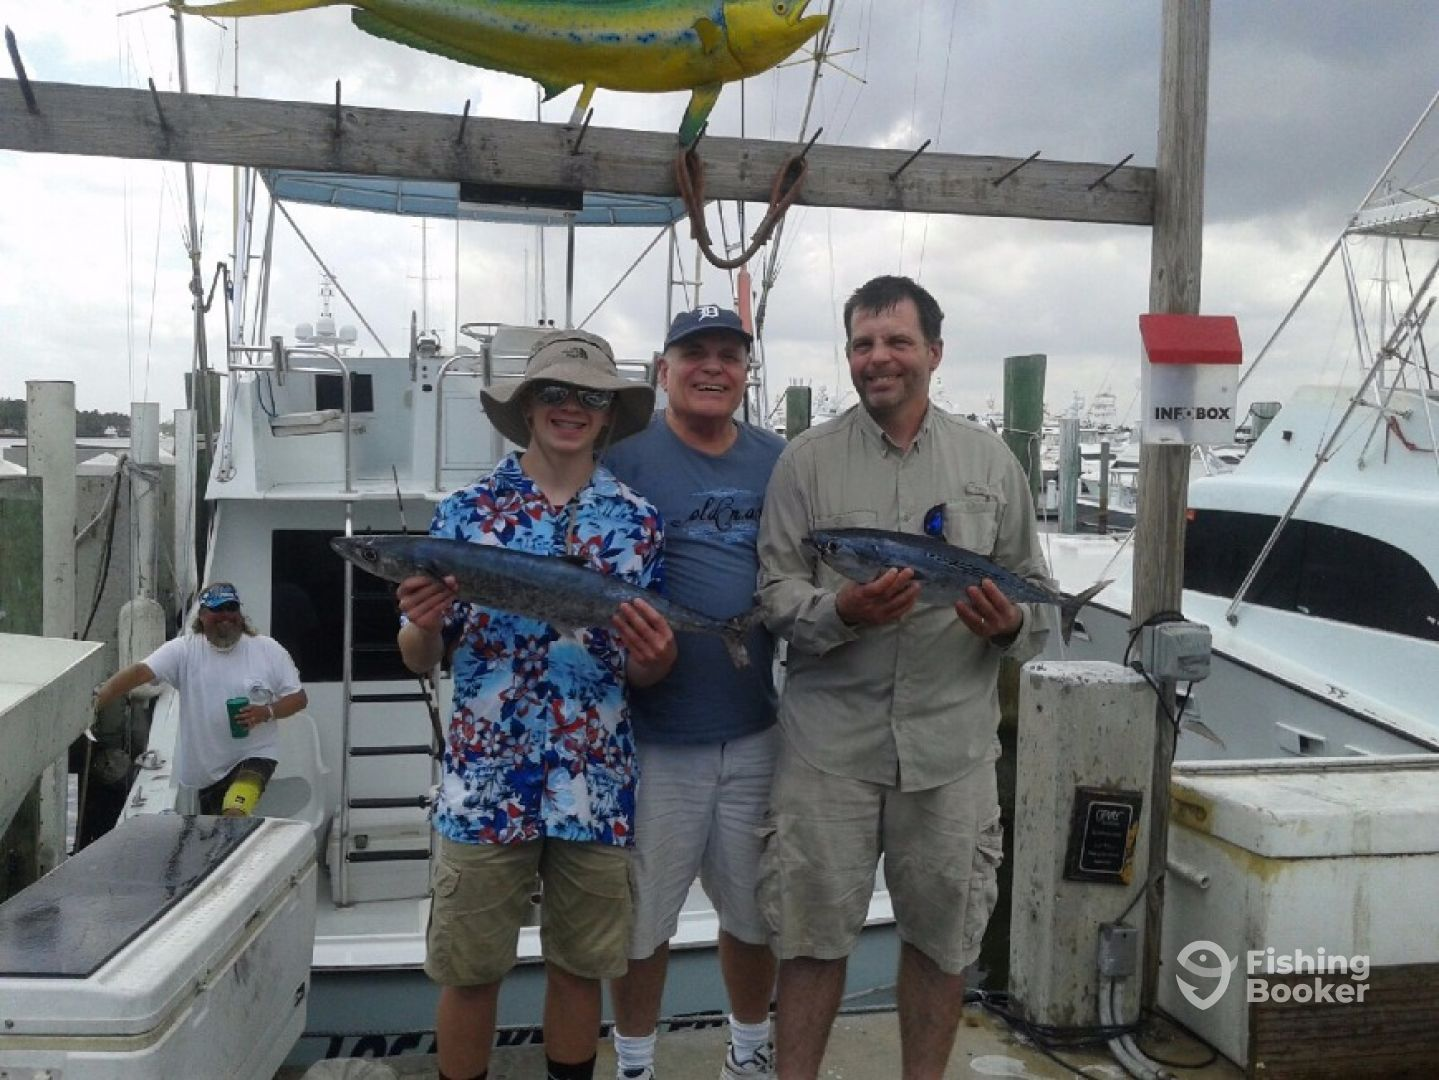 Fish local knowledge fort lauderdale fl fishingbooker for Local knowledge fishing